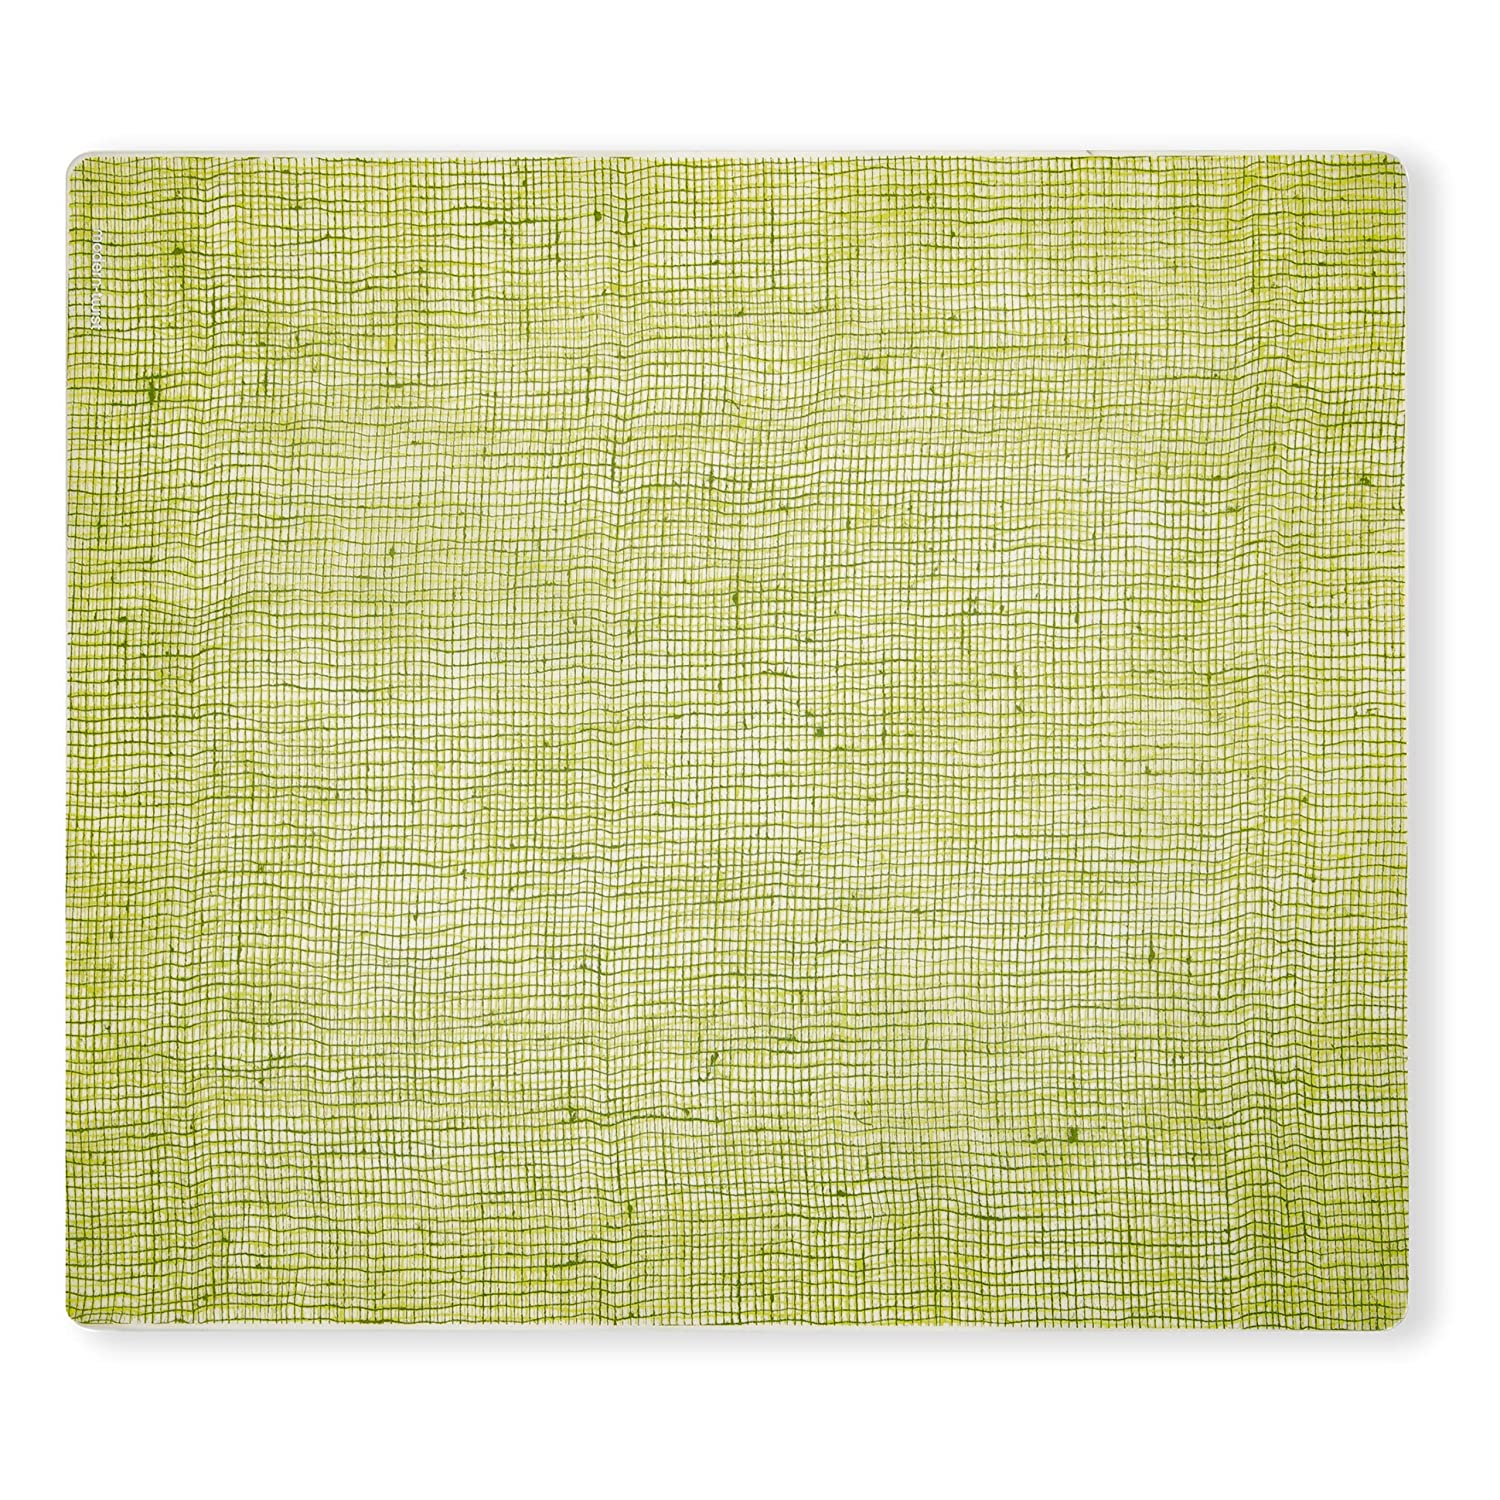 Modern Twist Placemat Linen Apple Green 100% plastic free silicone, waterproof, adjustable, dishwasher safe, Rectangle